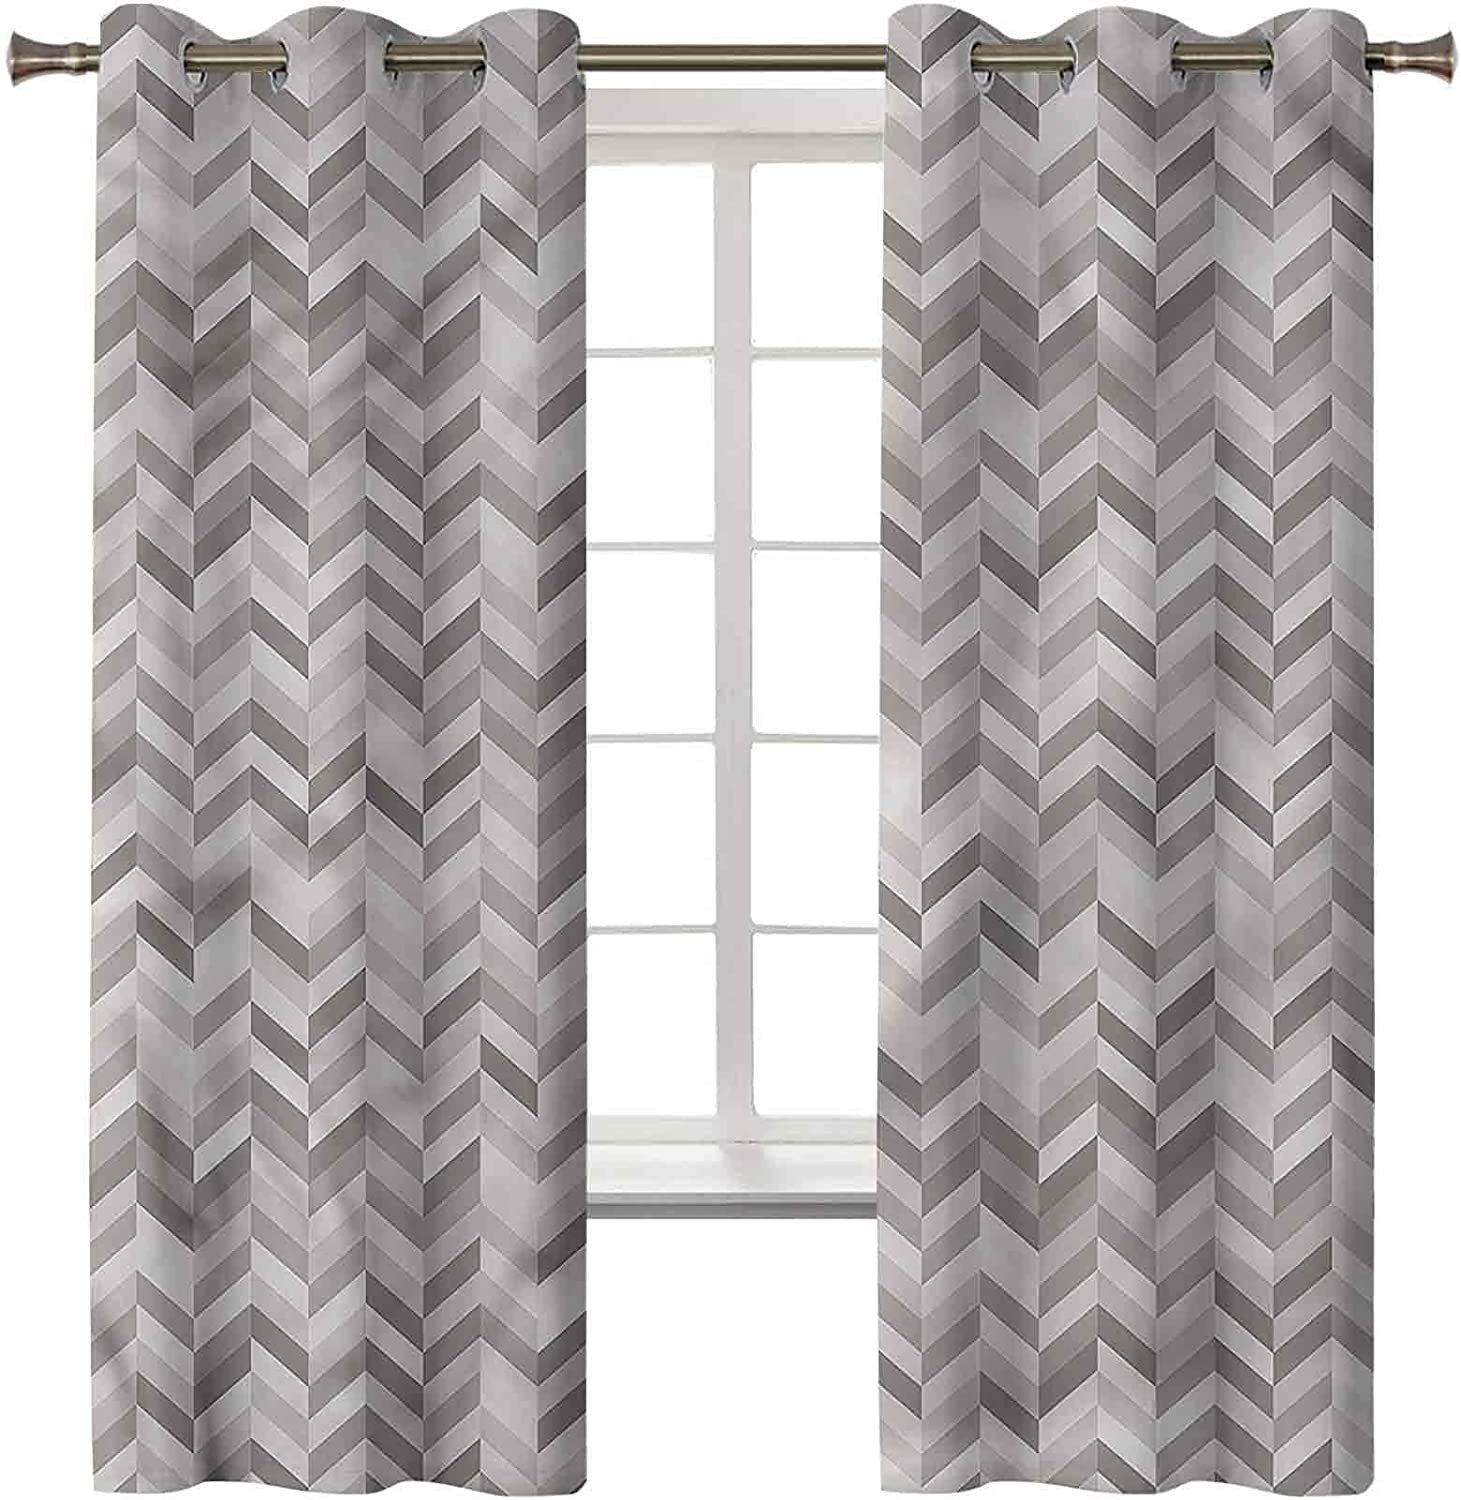 Chevron Curtains for Living Room Set of B 42 Inch Max 40% OFF Panels 2 Max 83% OFF 84 x